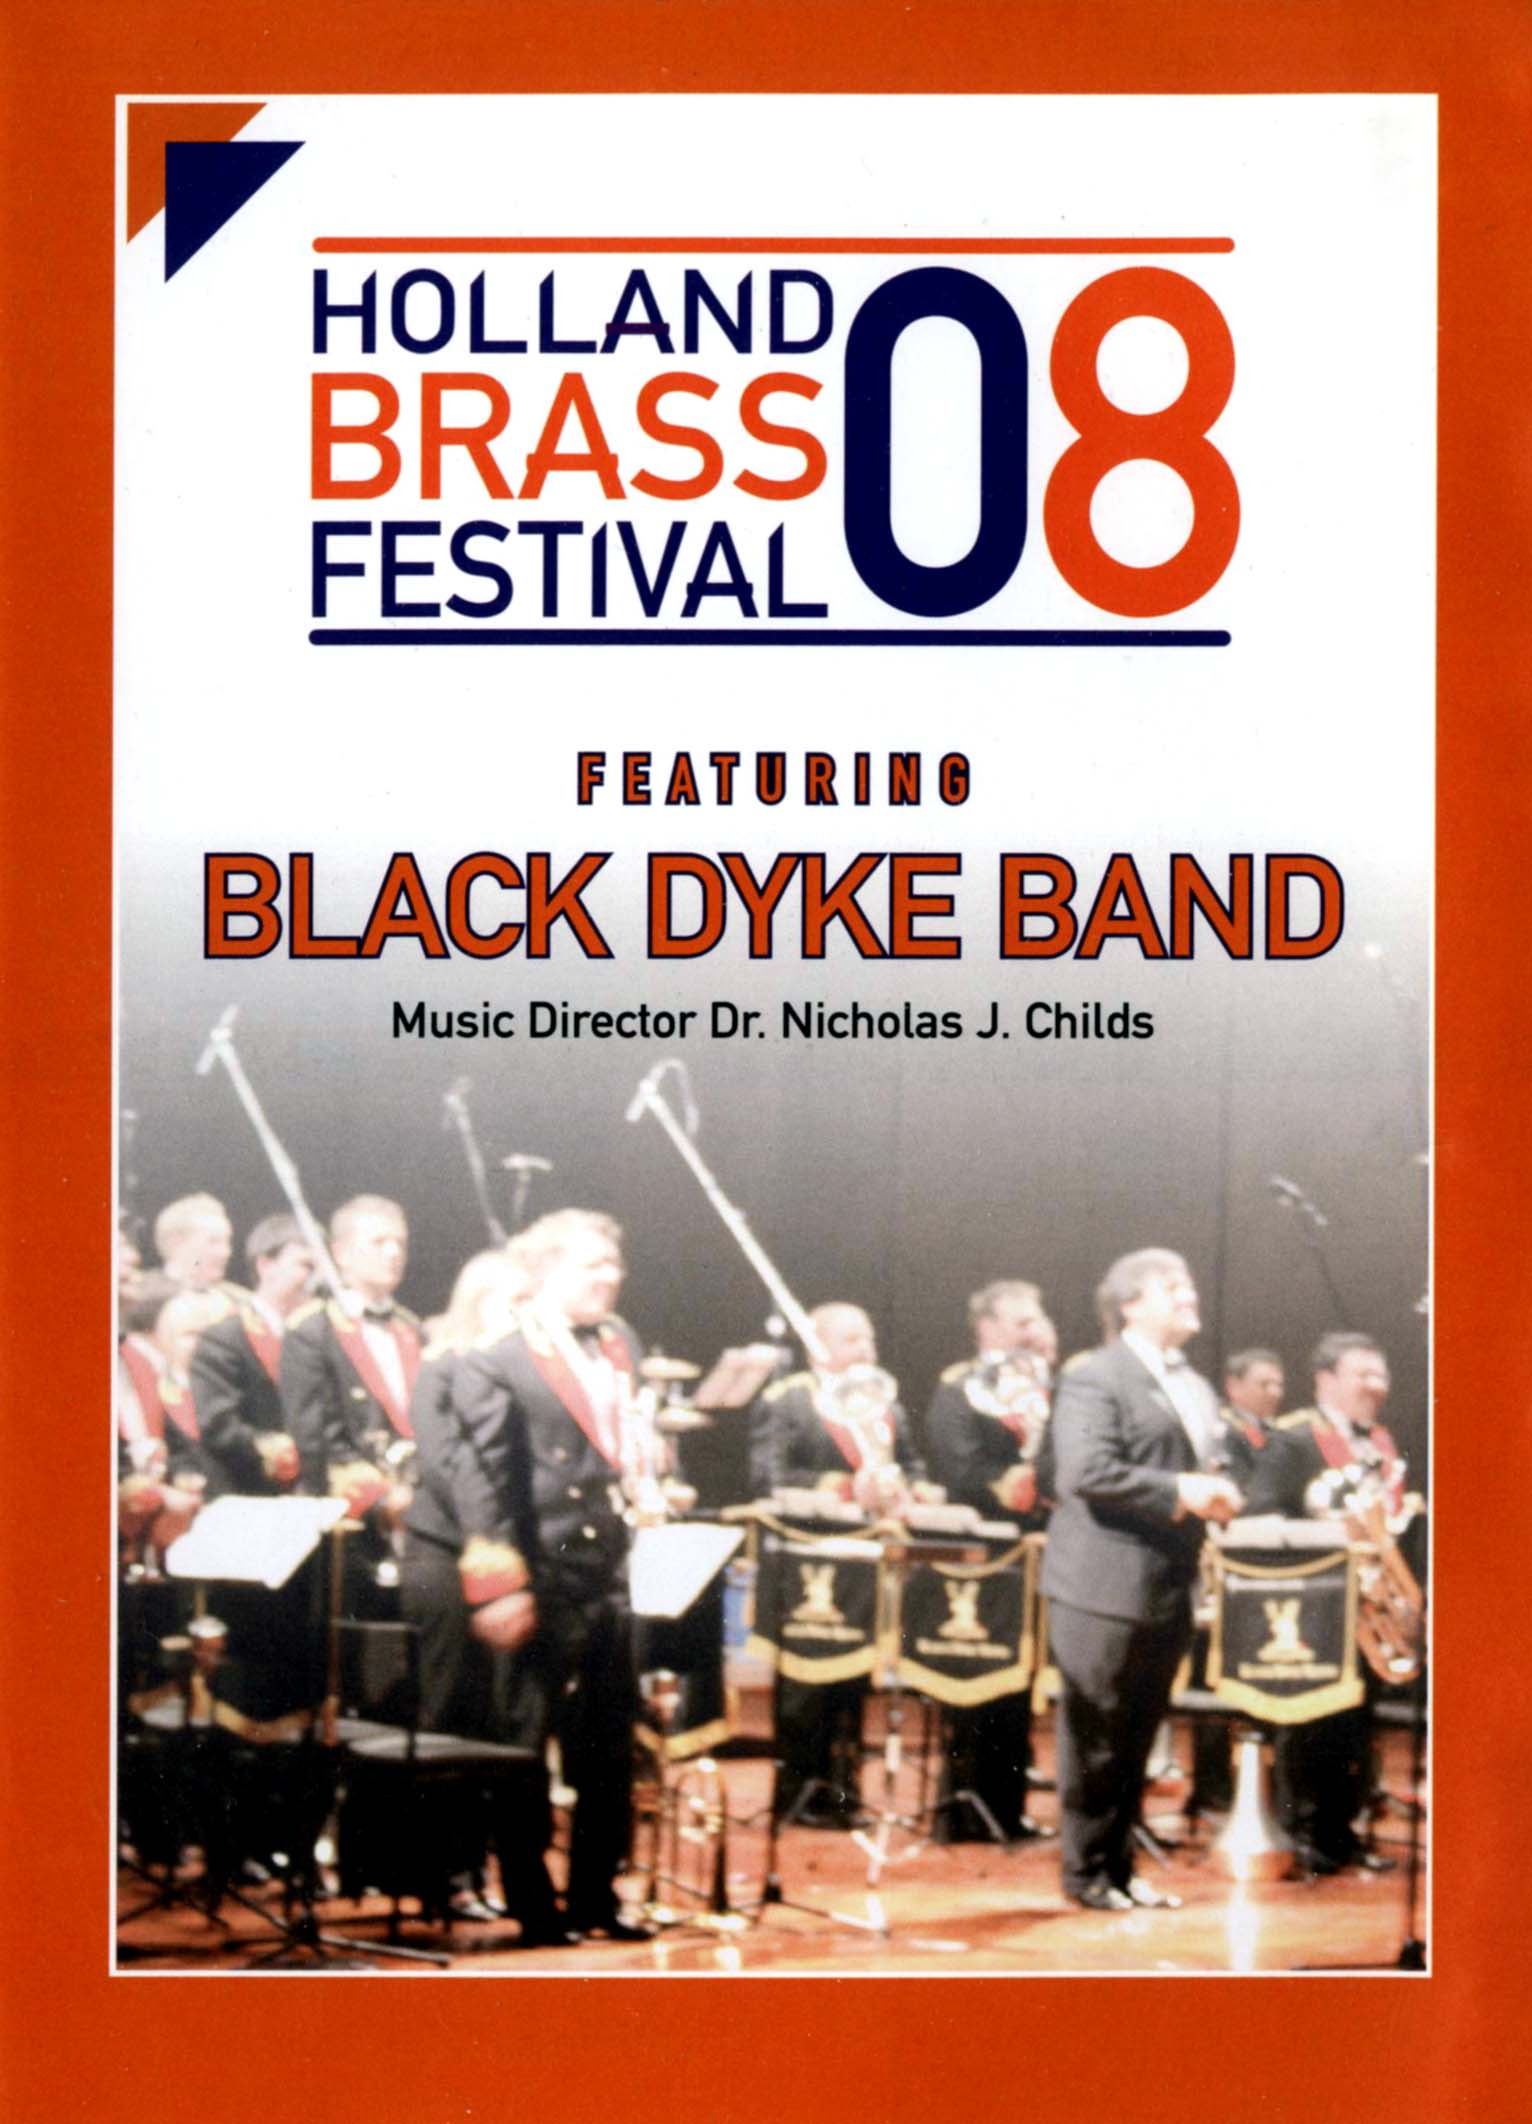 Holland Brass Festival 2008 Featuring Black Dyke Band